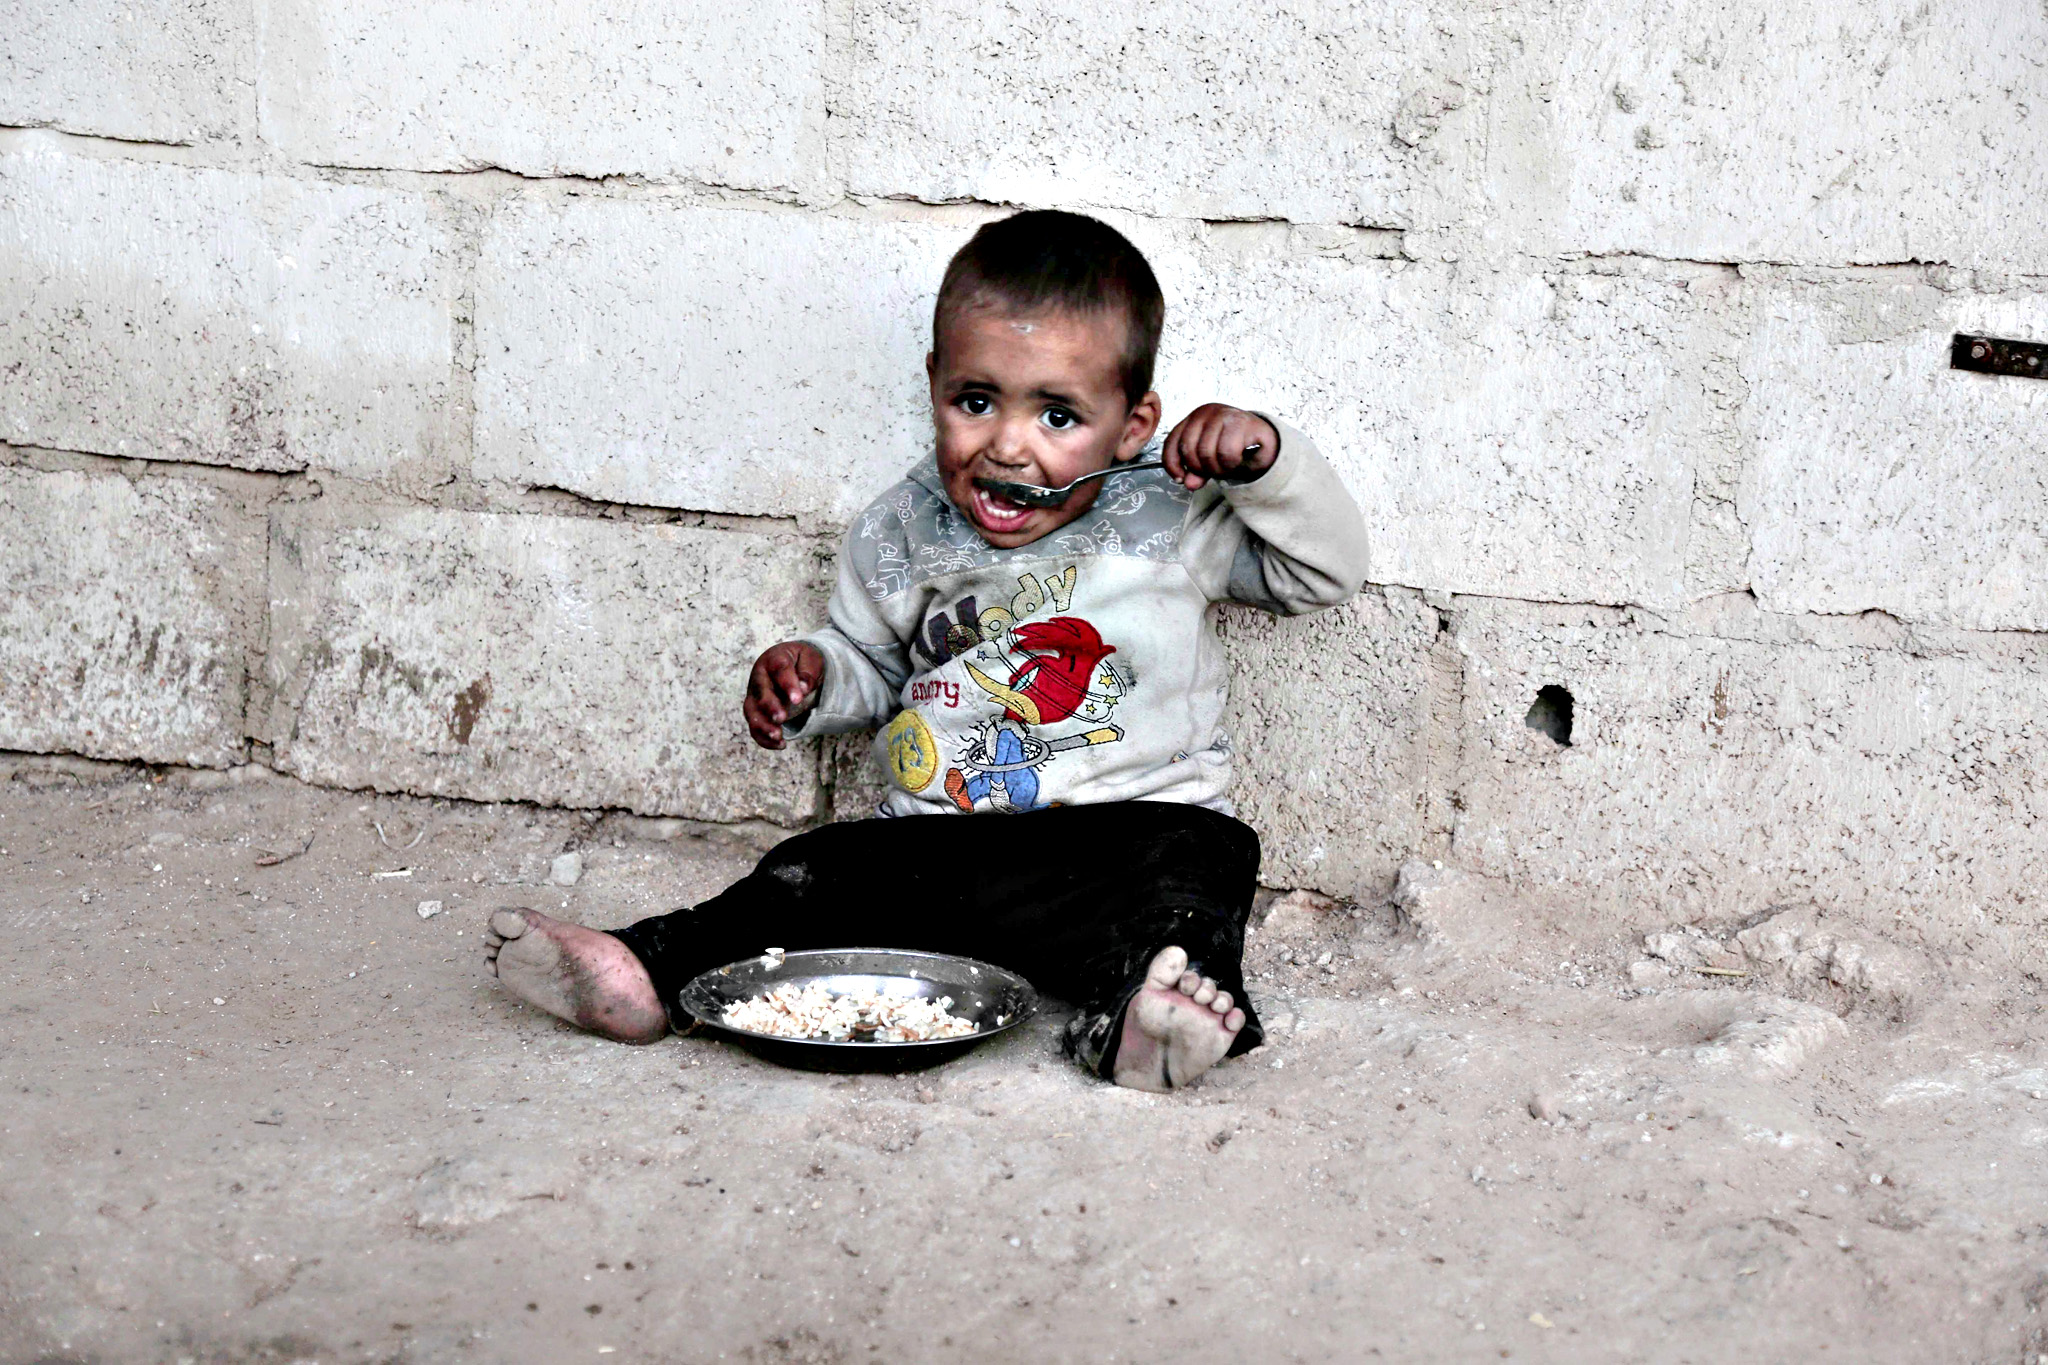 ..A child from the Abu Sleiman family has a lunch at his house in the Syrian town of Beit Nayem, in the rebel-held Eastern Ghouta region on the outskirts of the capital Damascus. Abu Sleiman, 39, has eleven children and two wives. He got injured in 2014 in a Syrian government air strike on his house in the nearby village of Marj al-Sultan and cannot work anymore.